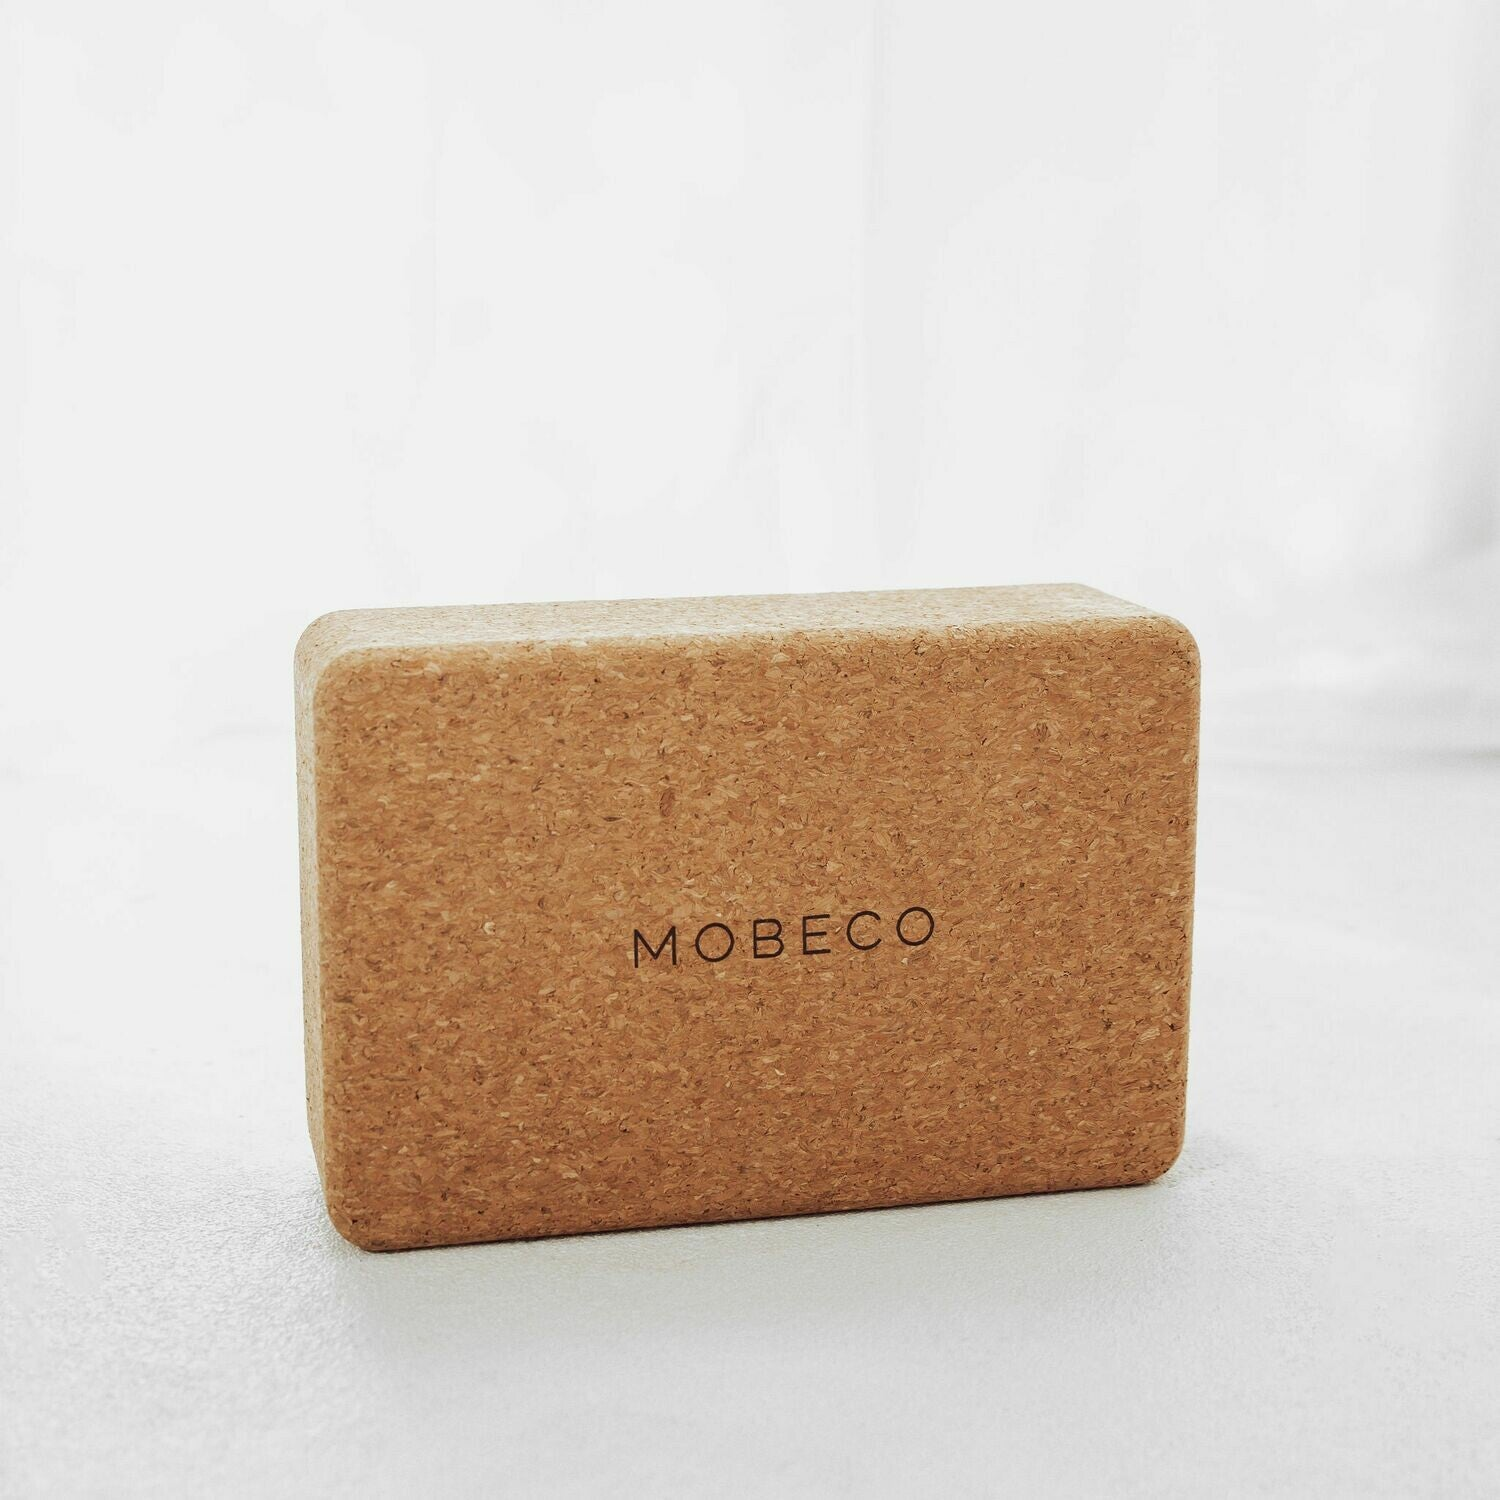 MOBECO Yoga Block